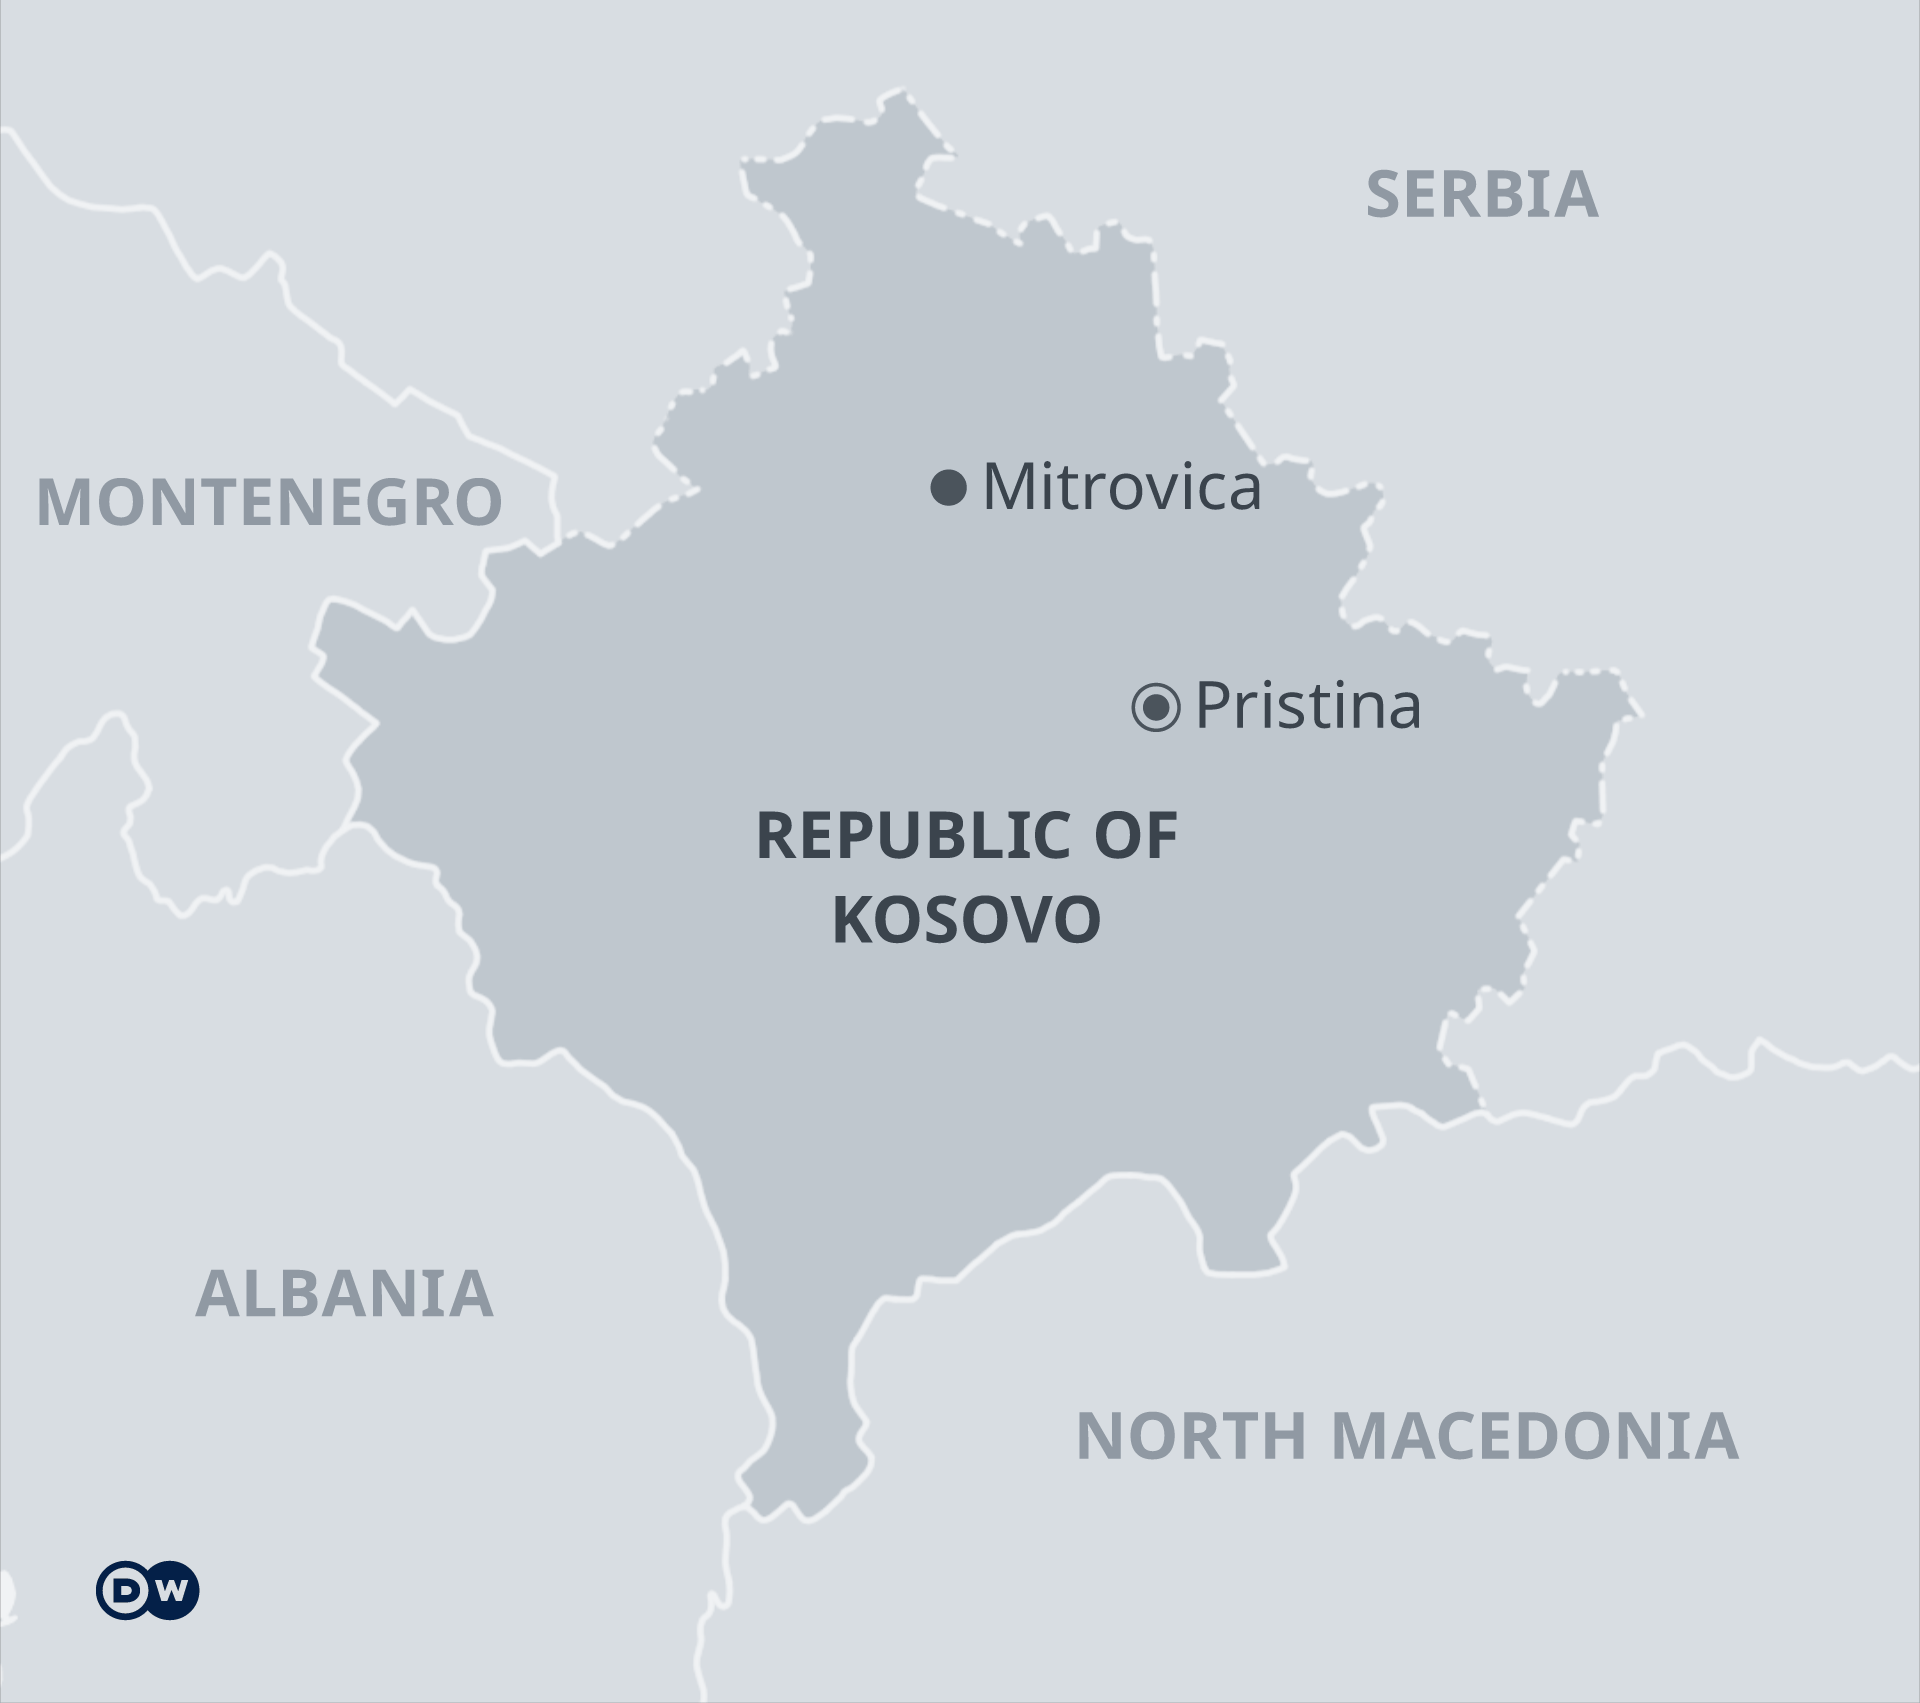 Map showing location of Kosovo, with Pristina and Mitrovican marked.